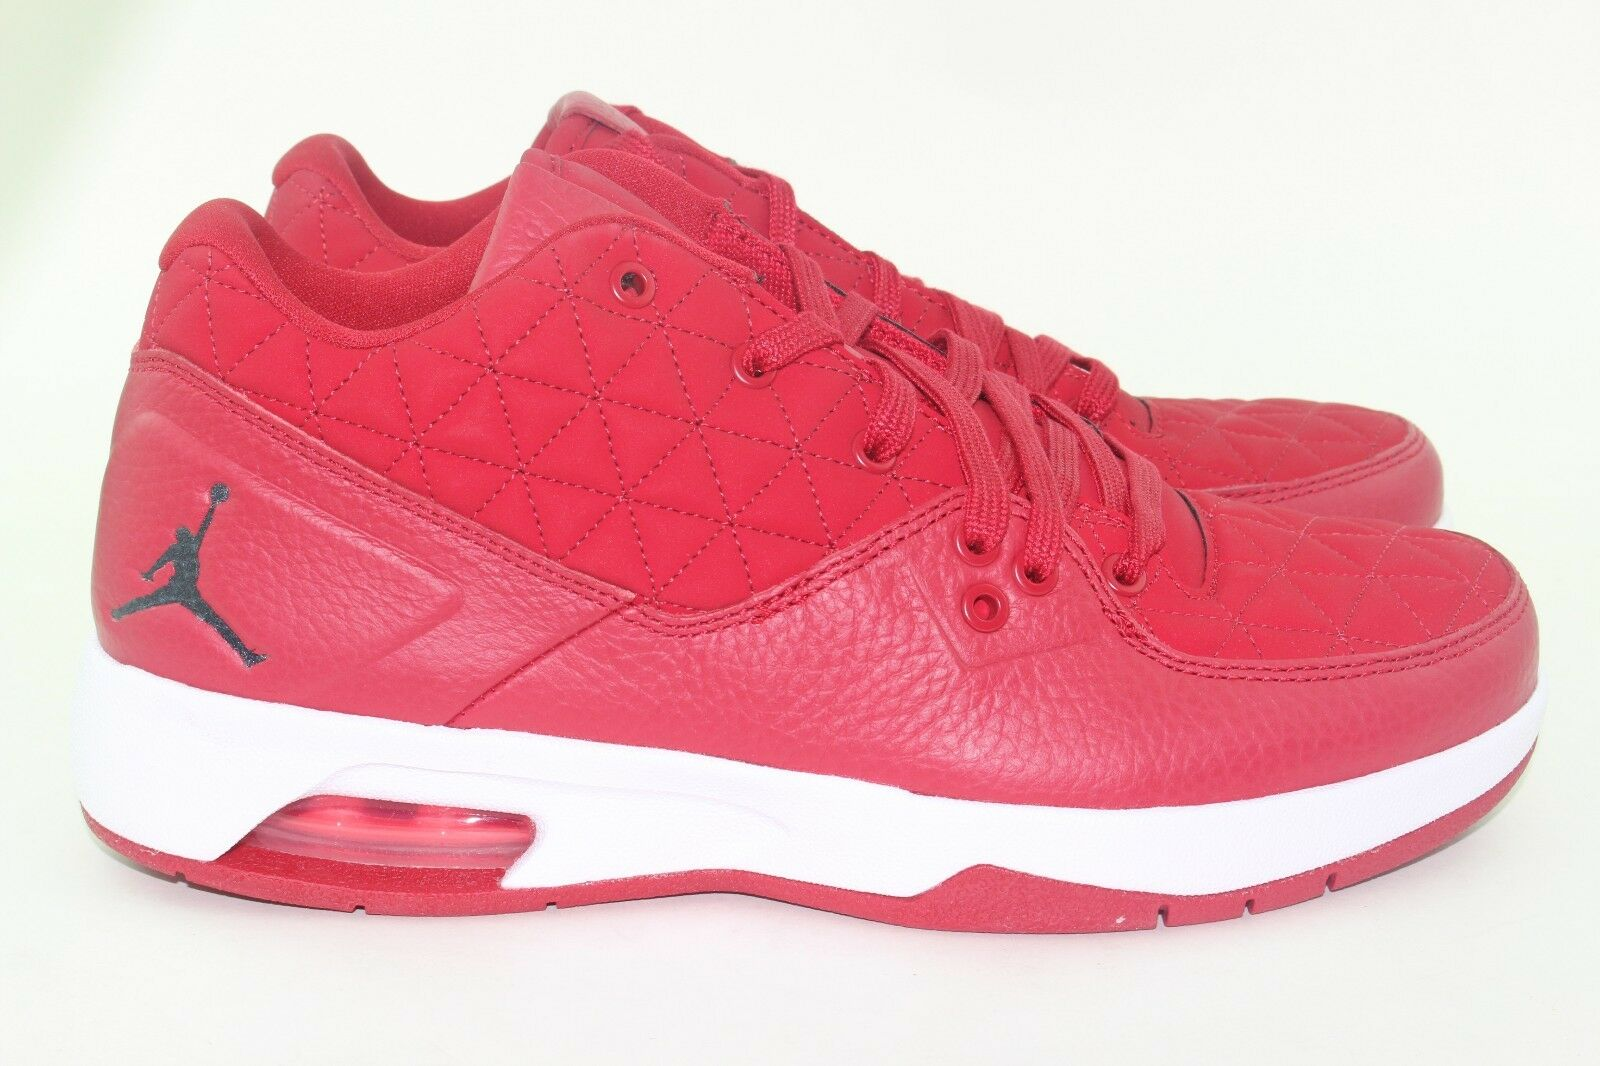 JORDAN CLUTCH GYM RED MEN SIZE 8.0 NEW RARE COMFORT HEEL AIR-SOLE LEATHER UPPER